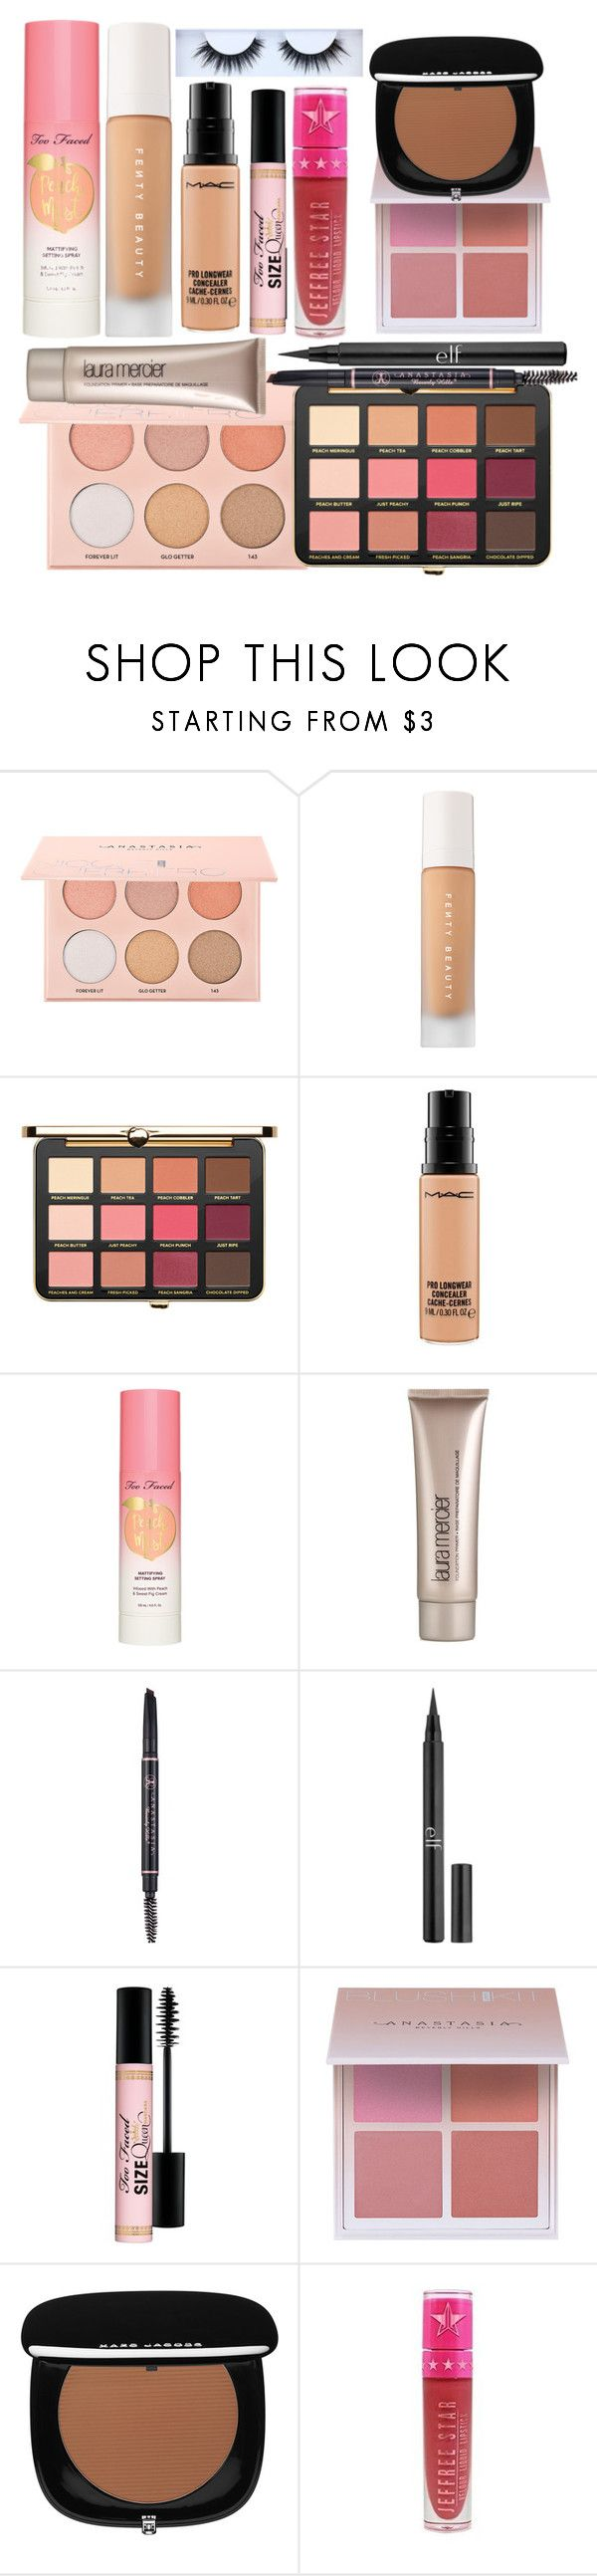 """""""Oh my darling, it is true. Beautiful things have dents and scratches too."""" by thelyricsmatter ❤ liked on Polyvore featuring Sephora Collection, Just Peachy, MAC Cosmetics, Too Faced Cosmetics, Laura Mercier, Anastasia Beverly Hills, Charlotte Russe, Marc Jacobs, Jeffree Star and Huda Beauty"""